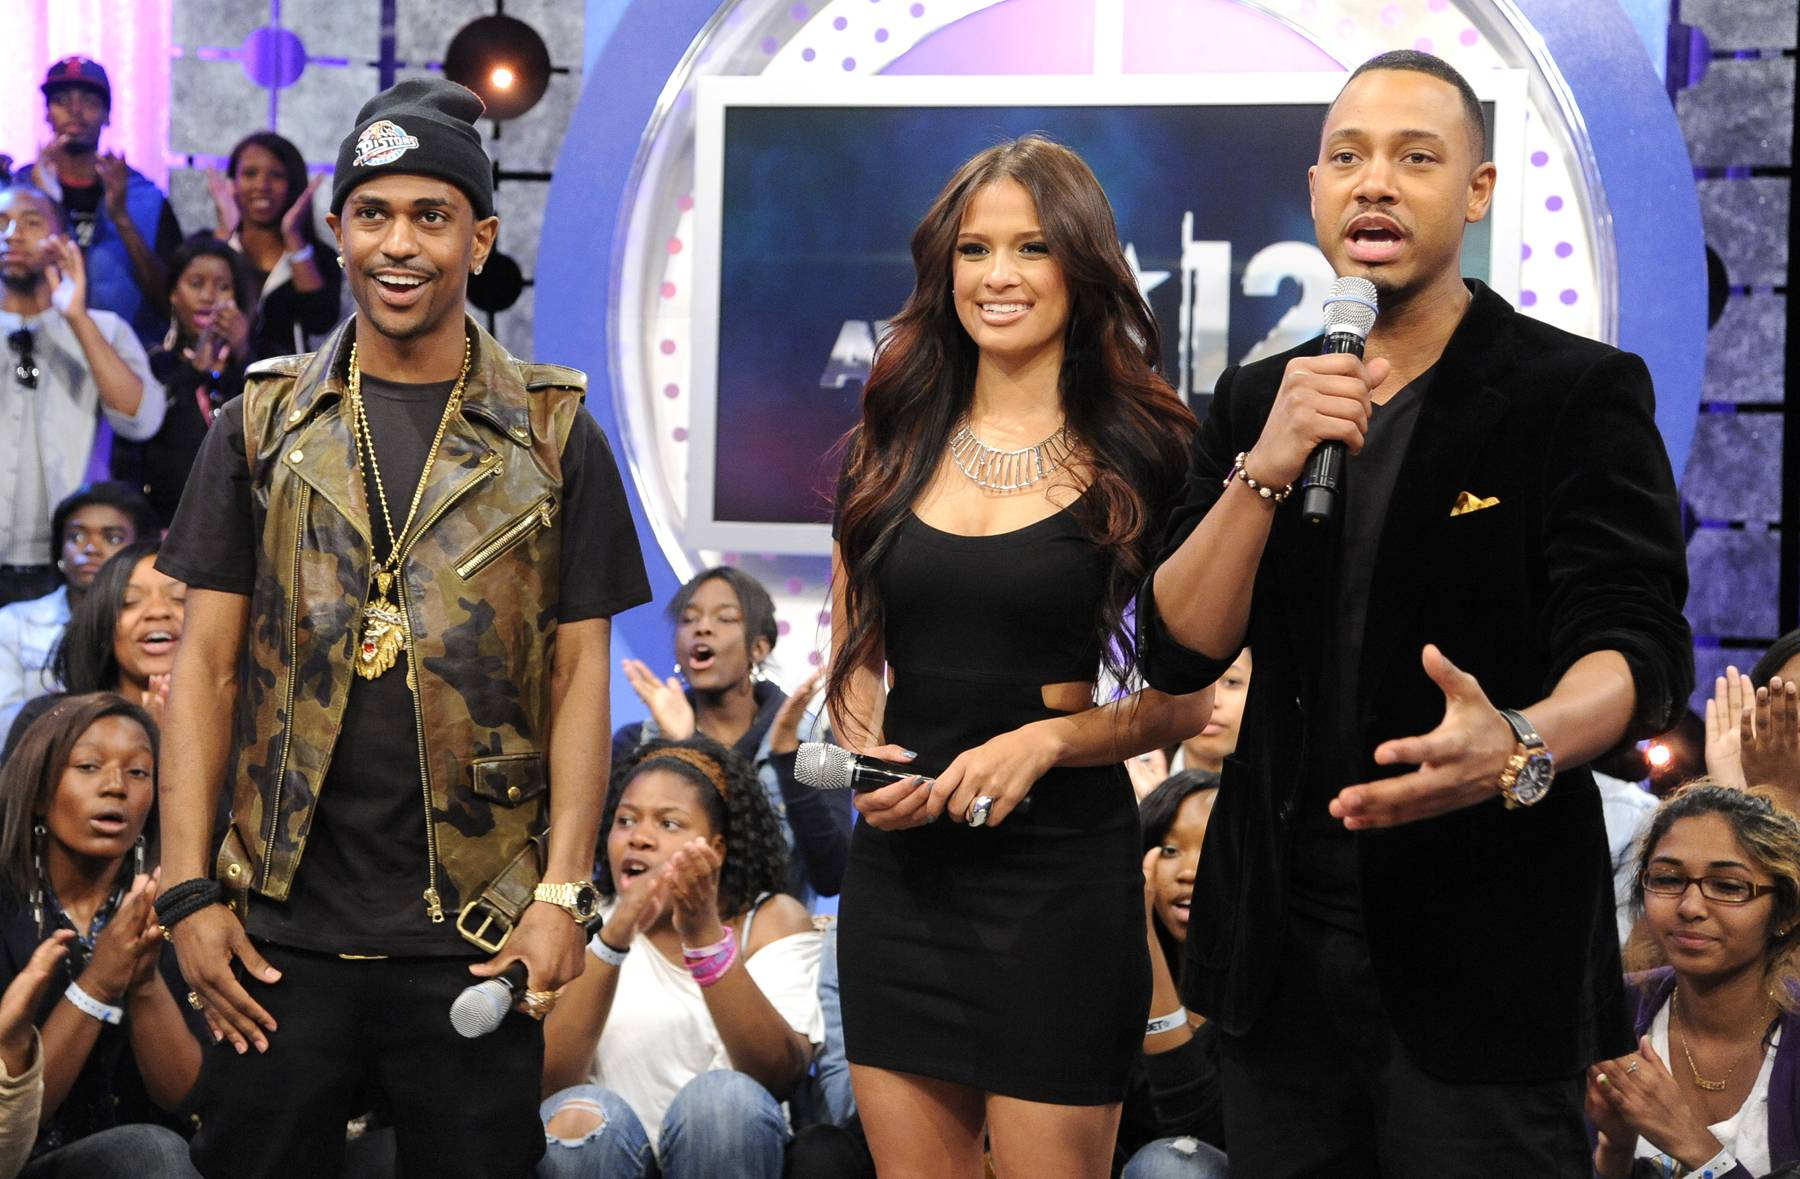 Camo Is In! - Big Sean with Rocsi Diaz and Terrence J at 106 & Park, May 22, 2012. (Photo: John Ricard / BET)